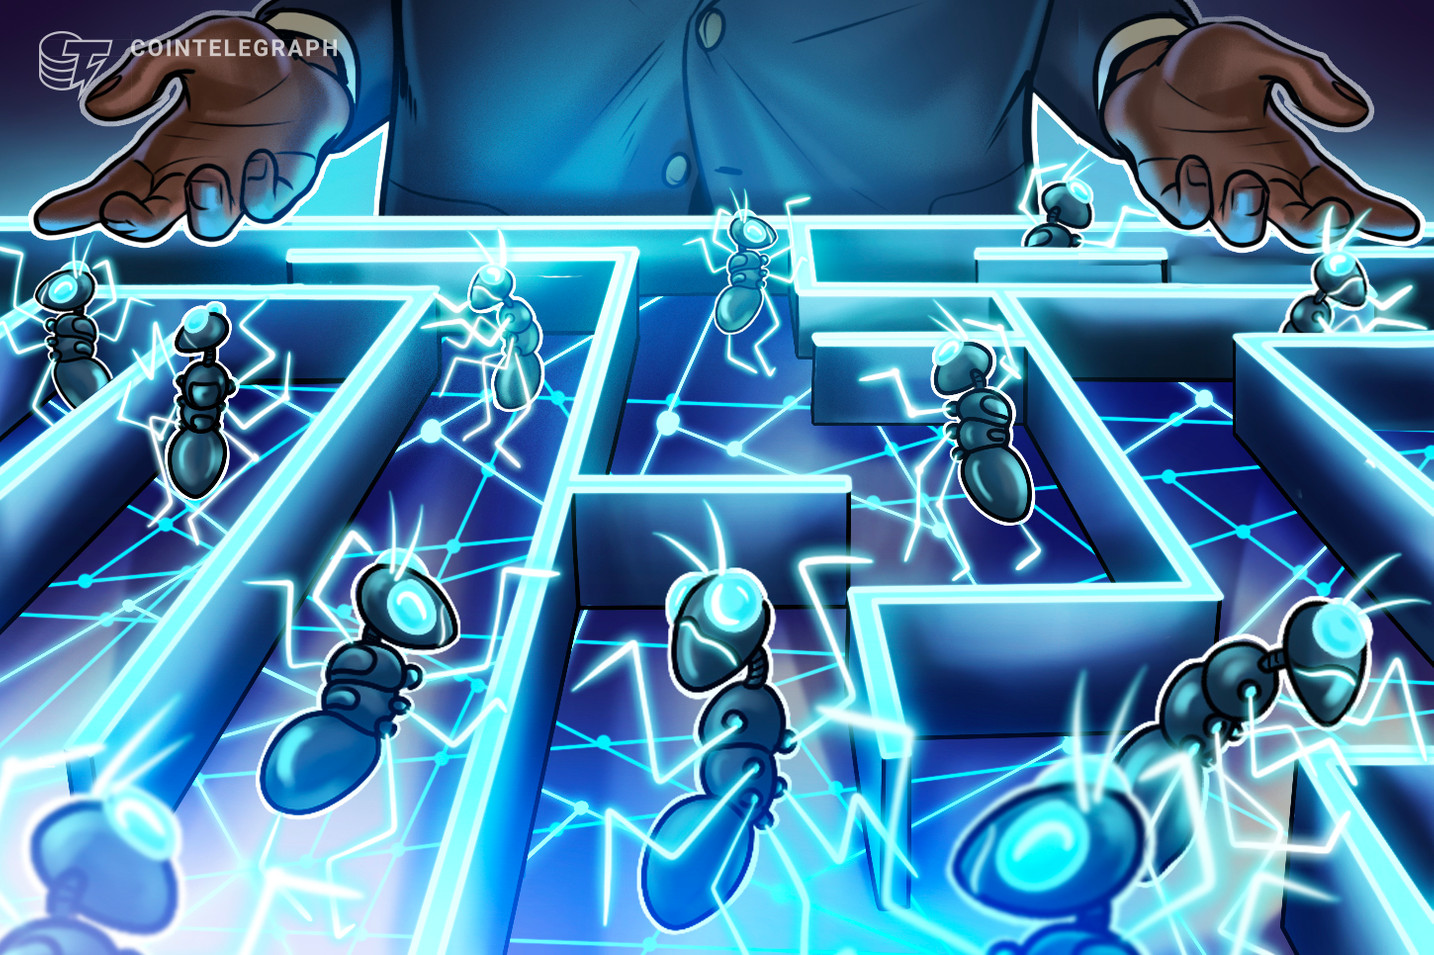 Blockchain tech 13X 'too expensive' to justify use: DocuSign CEO